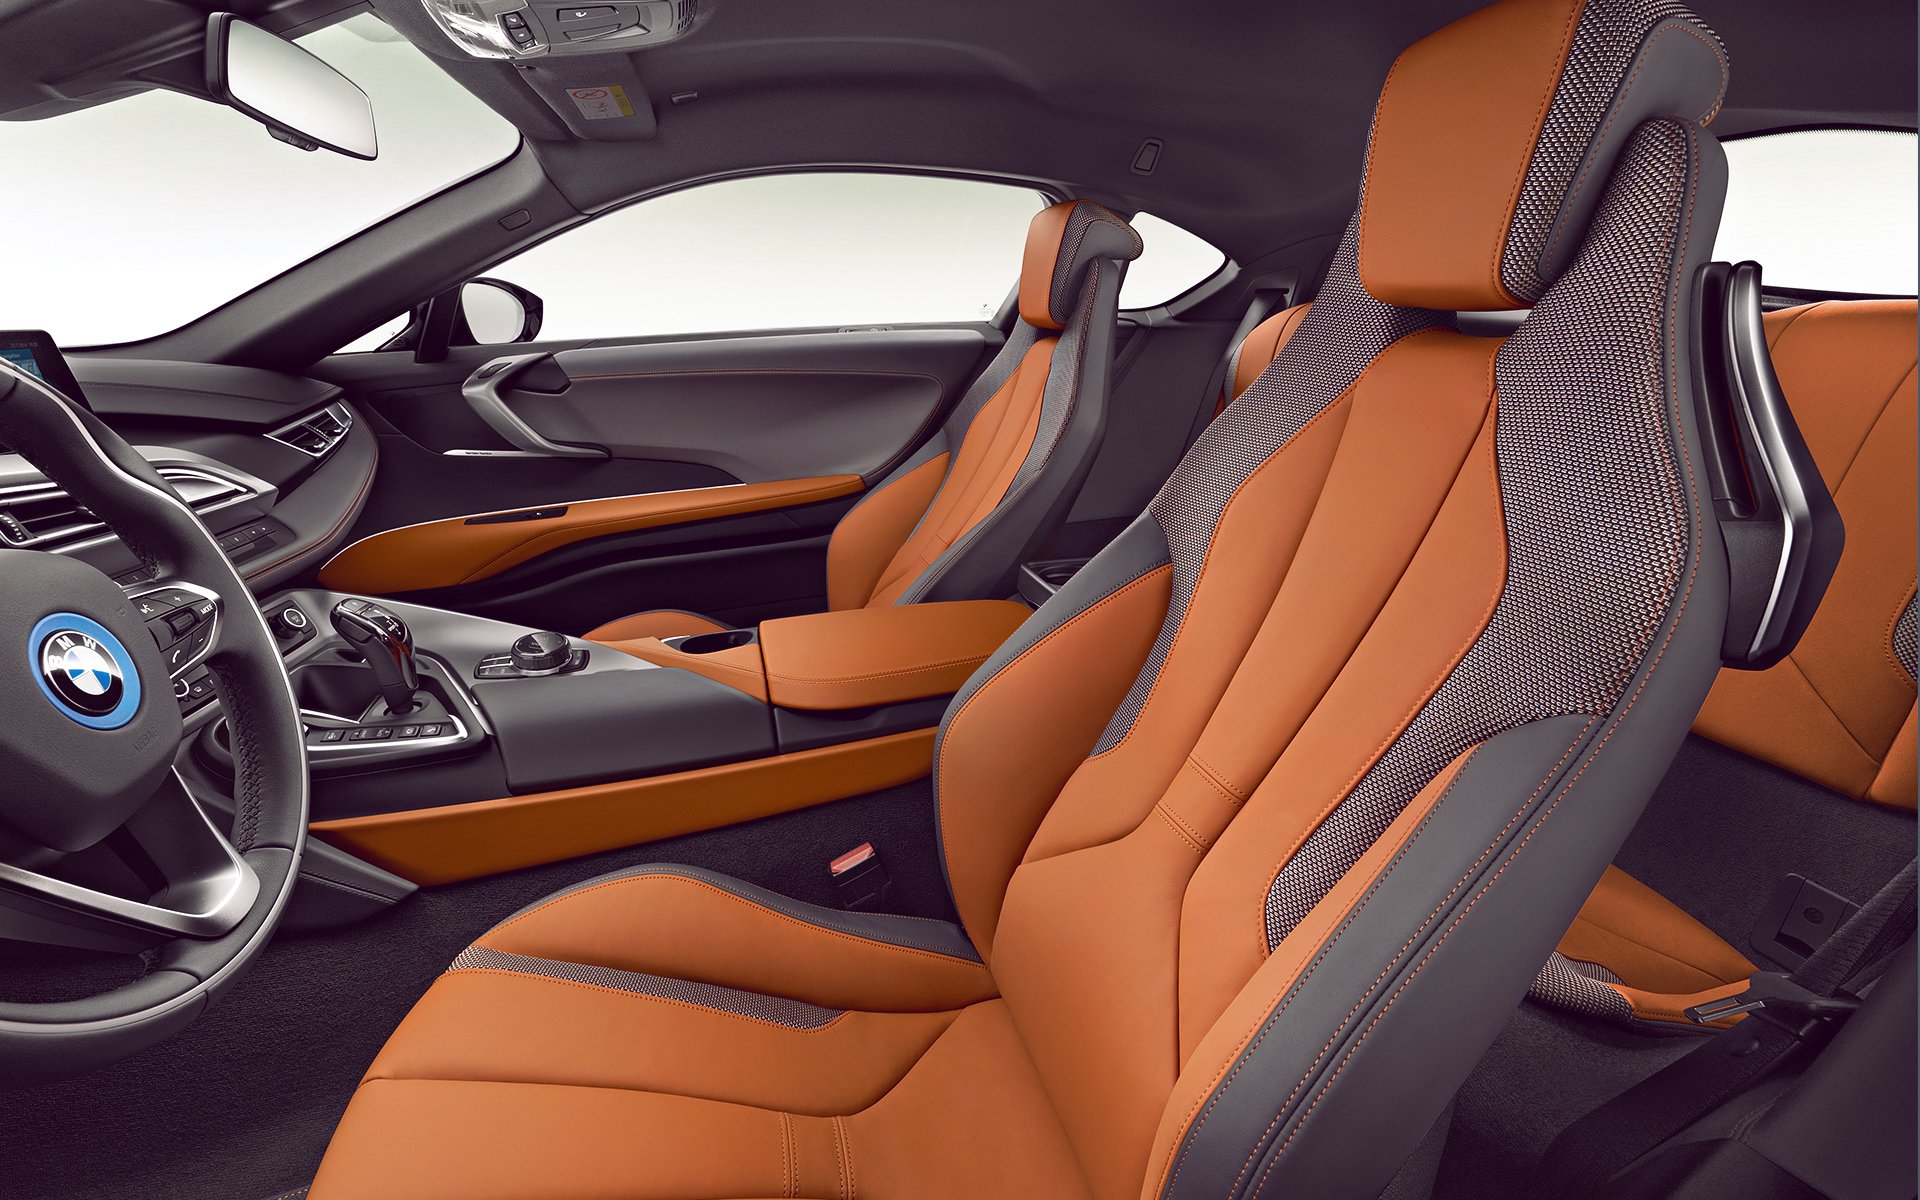 BMW i8 coupe images videos image 11